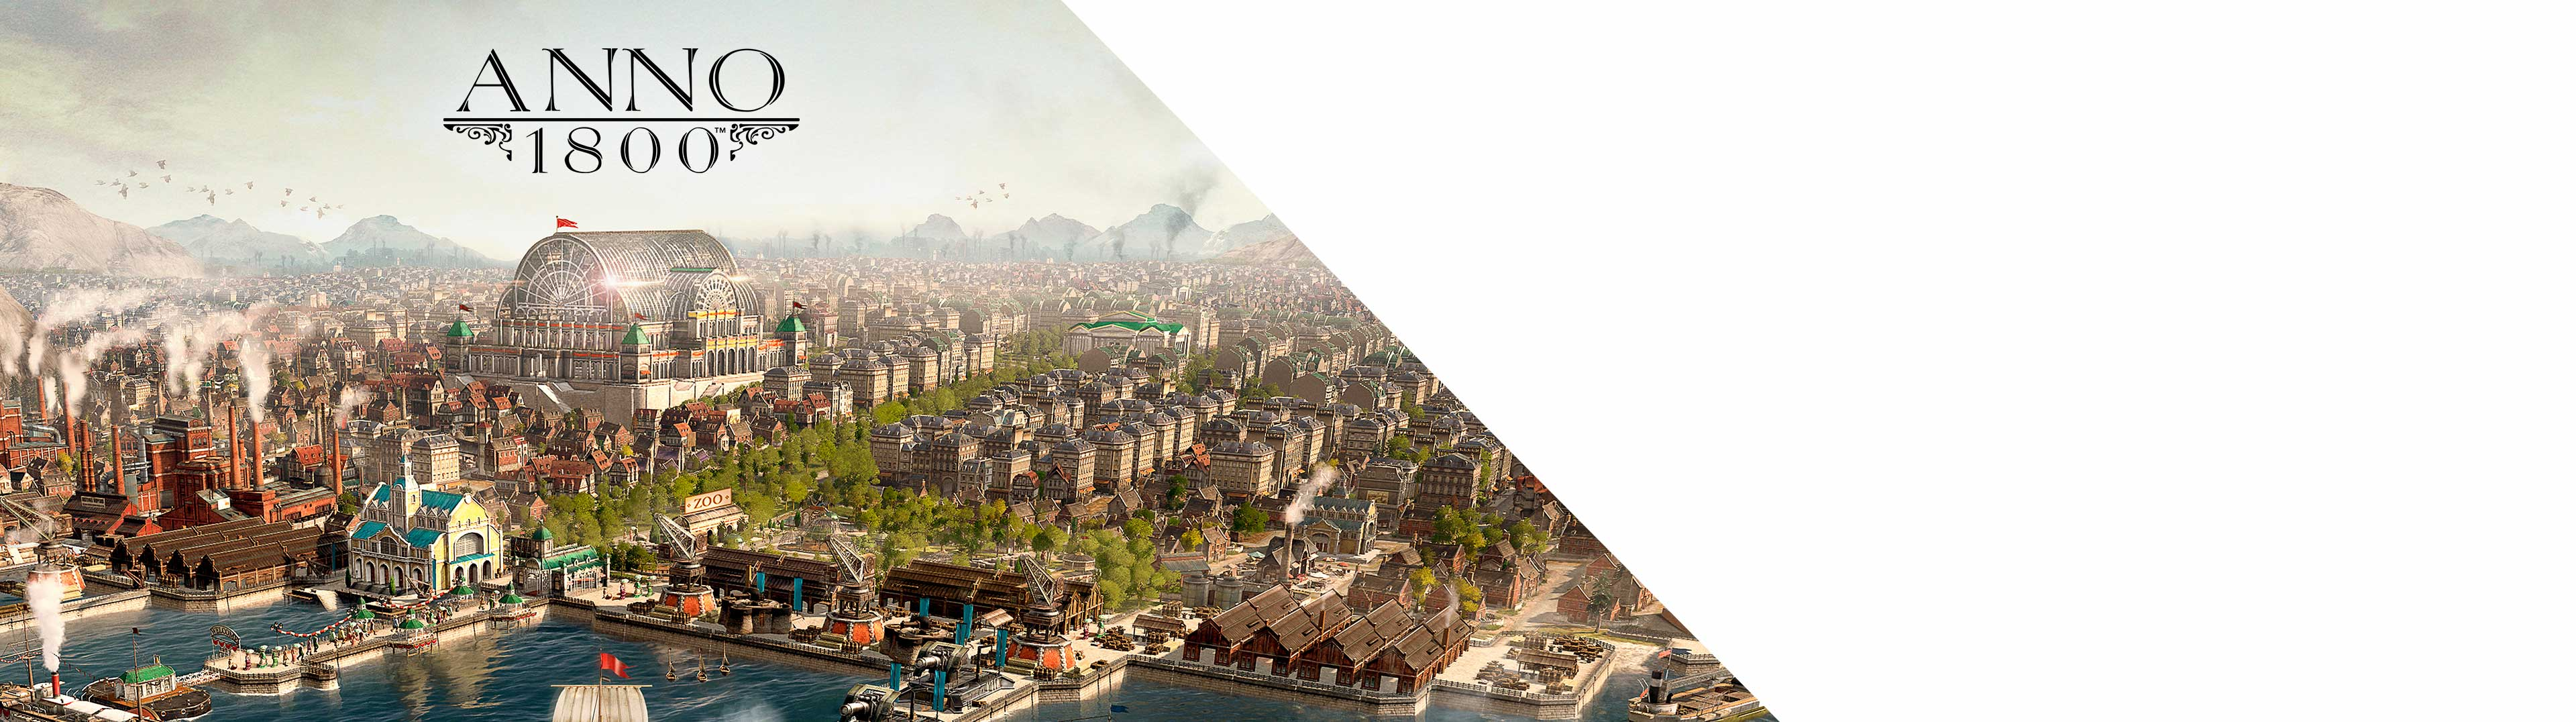 Get up to 33% off on Anno 1800